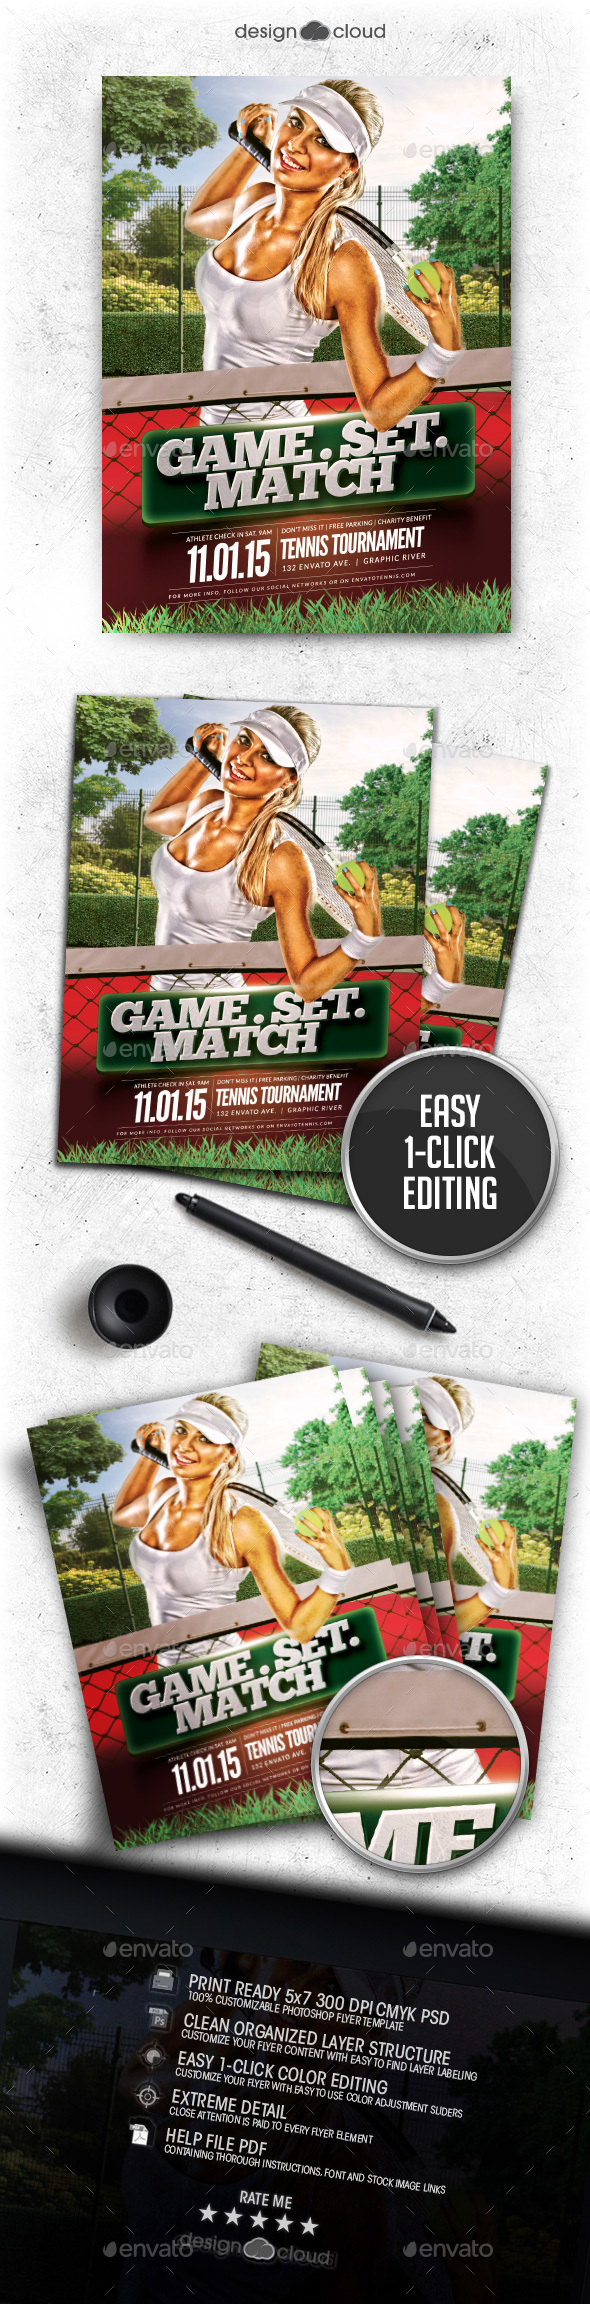 Game. Set. Match Tennis Flyer Template - Sports Events